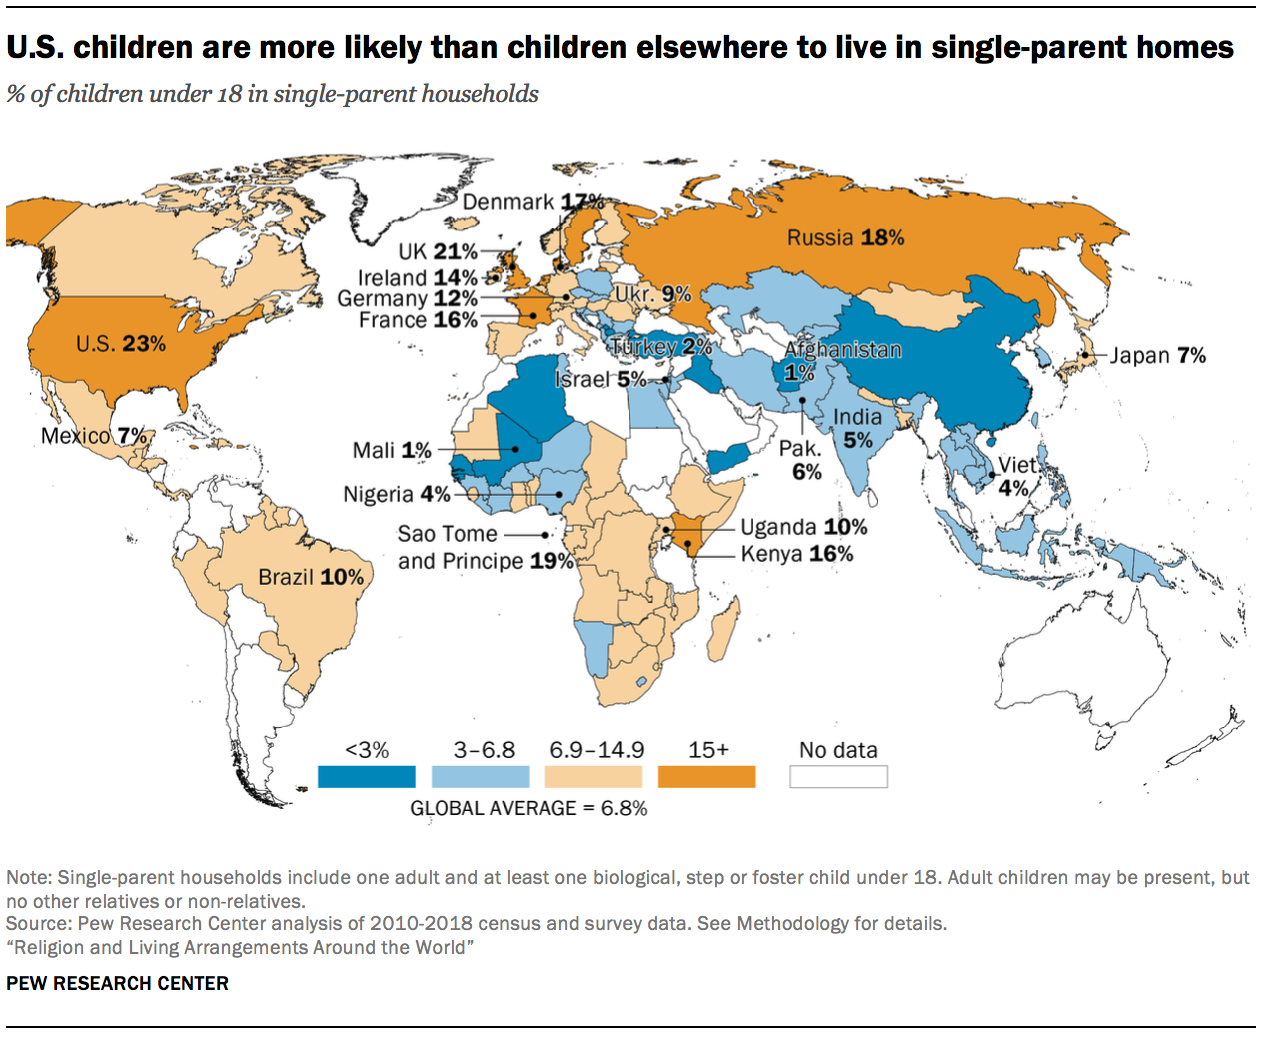 U.S. children are more likely than children elsewhere to live in single-parent homes